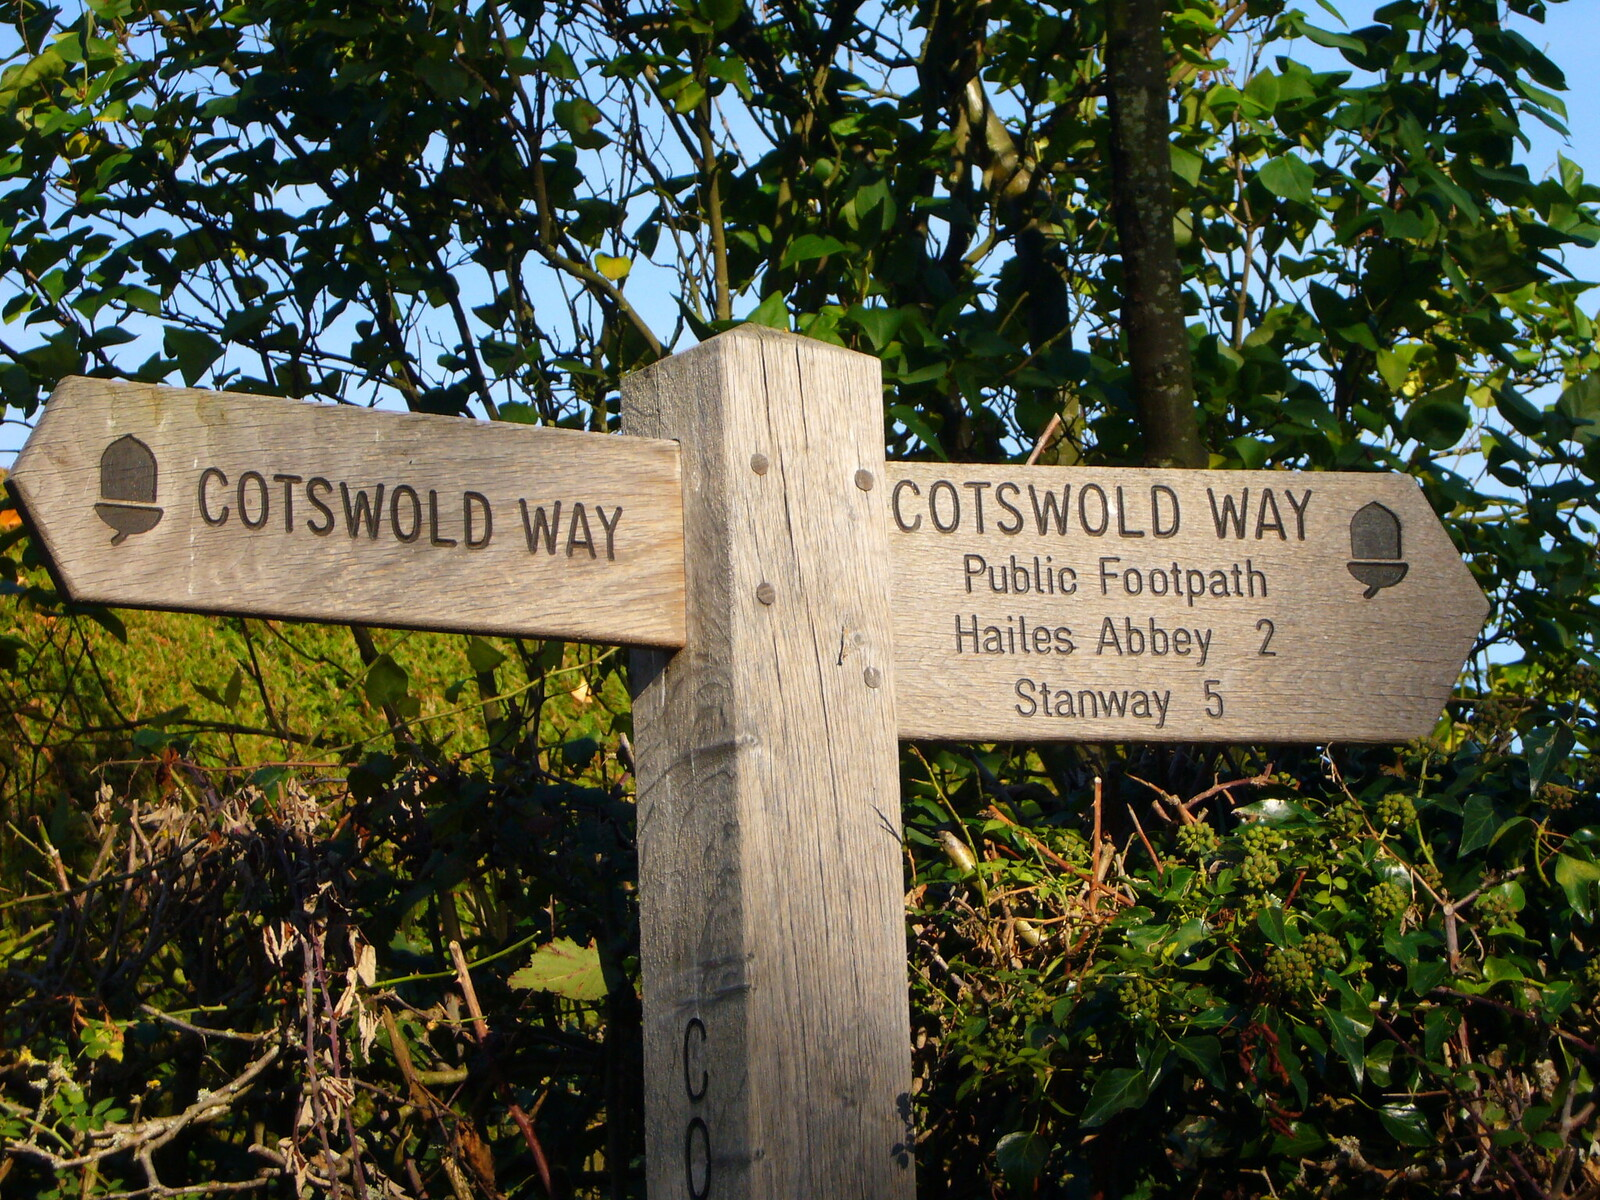 Signpost along the Cotswold Way. Credit Richard Cocks